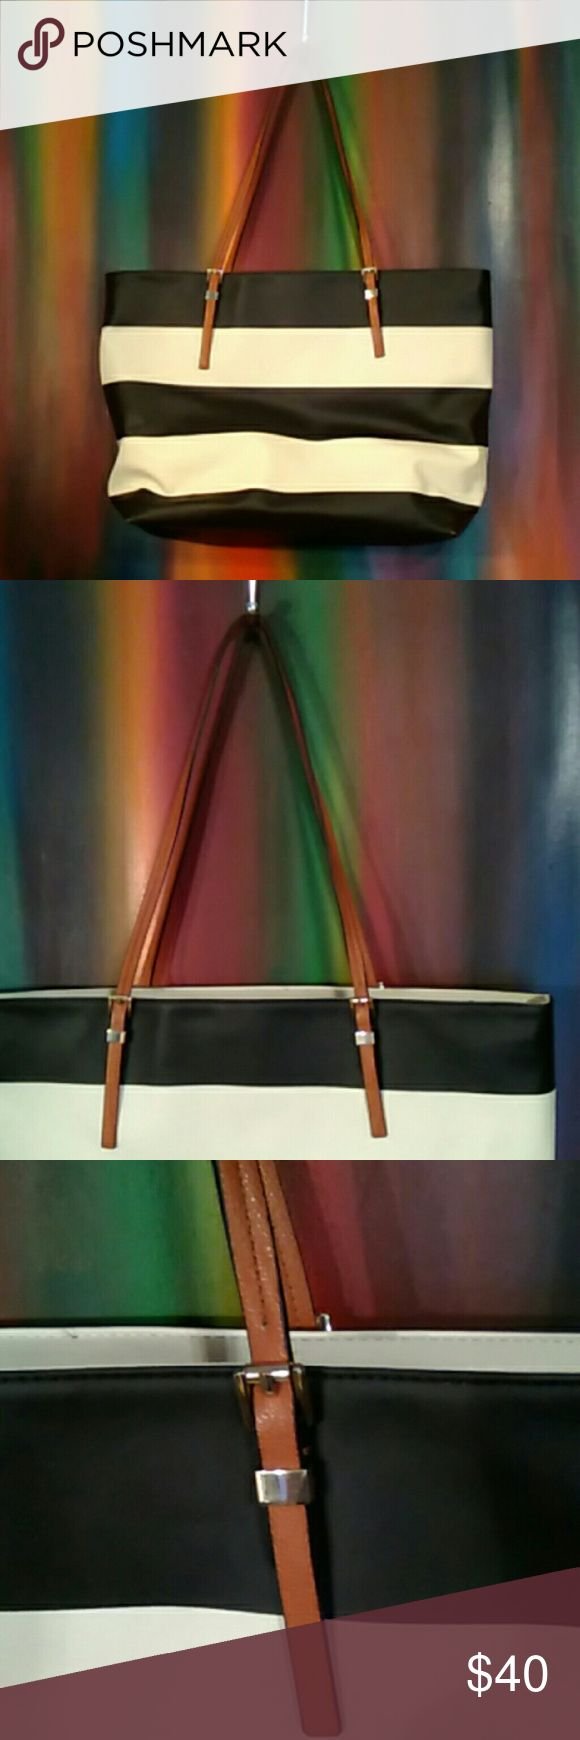 Banana Republic Vegan Leather Tote N w o t-Banana Republic vegan leather black and white striped tote bag with light brown straps. Gold Hardware. Zip top closure. Large pocket inside with zip closure on back panel. 19 x 14, strap drop is 12 in. Some fading on bottom corners( photo 4) overall great condition. Hot pink interior, Made in China Banana Republic Bags Totes